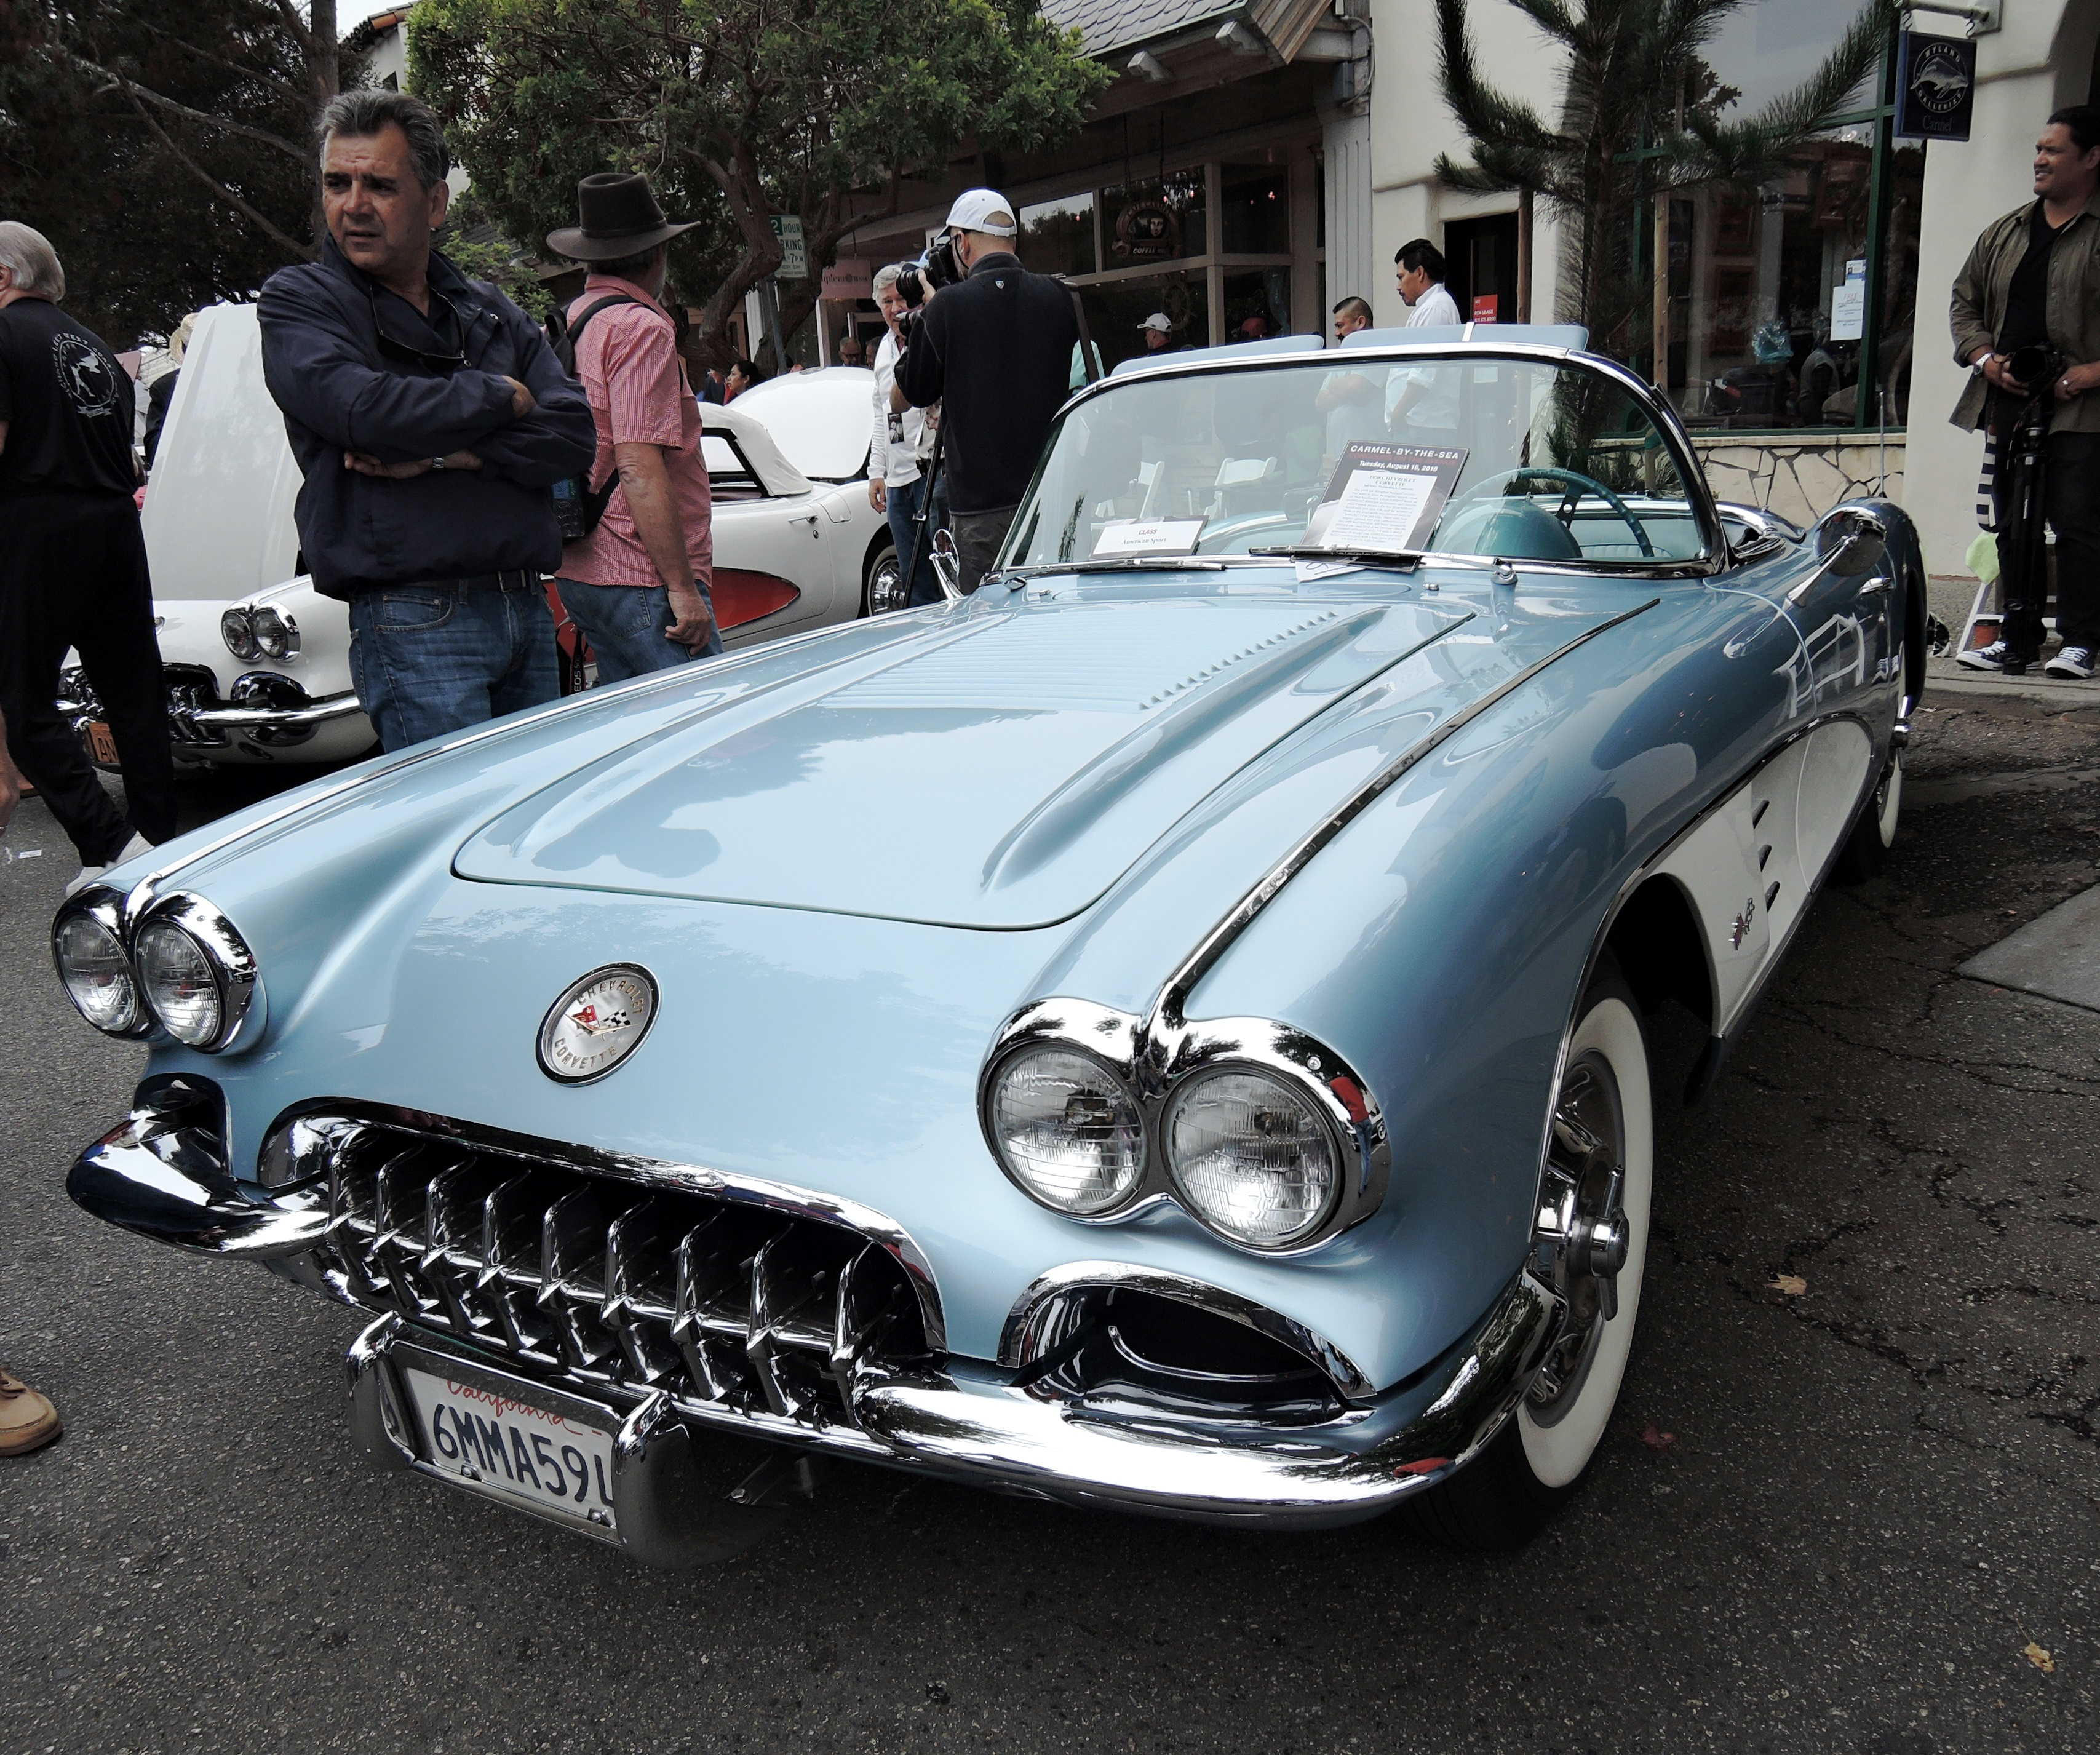 blue 1958 Chevrolet Corvette - Concours on the Ave Carmel